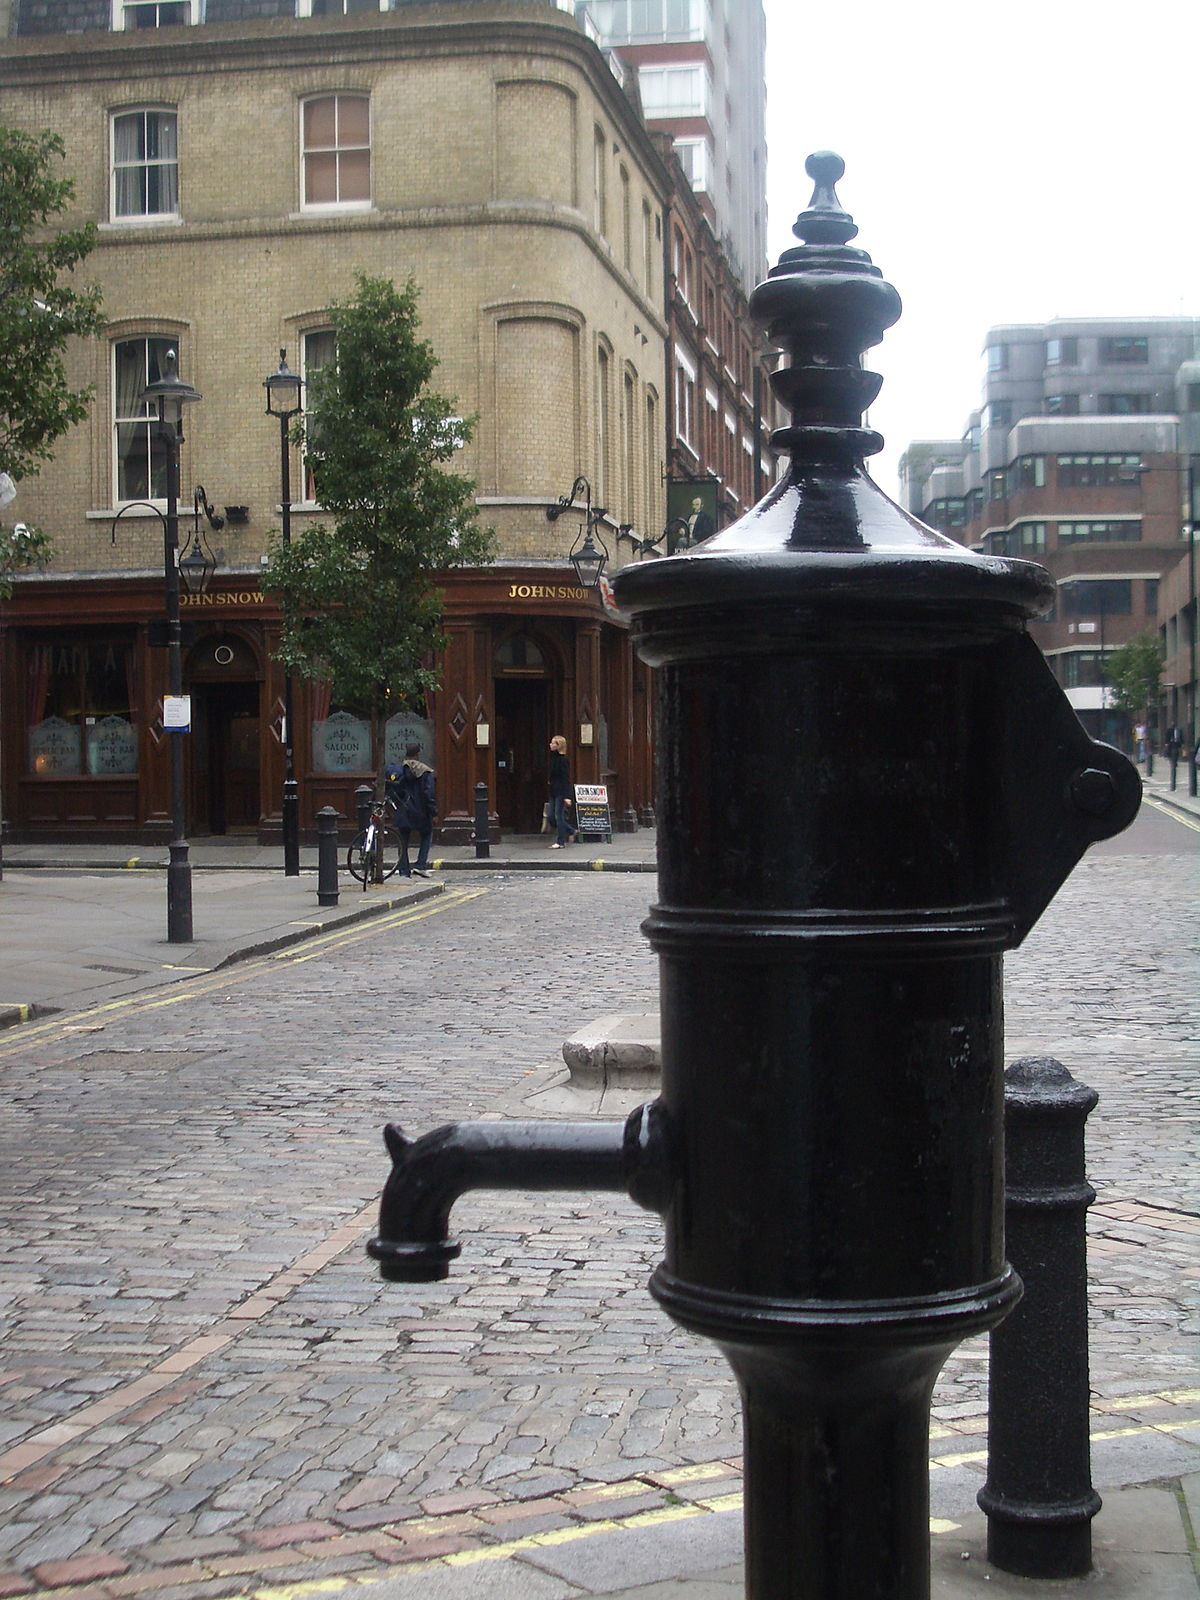 londons cholera epidemic Dr john snow discovered the source of the 1854 cholera epidemic in london he disabled this pump and ended the outbreak, and is now a hero of public health.